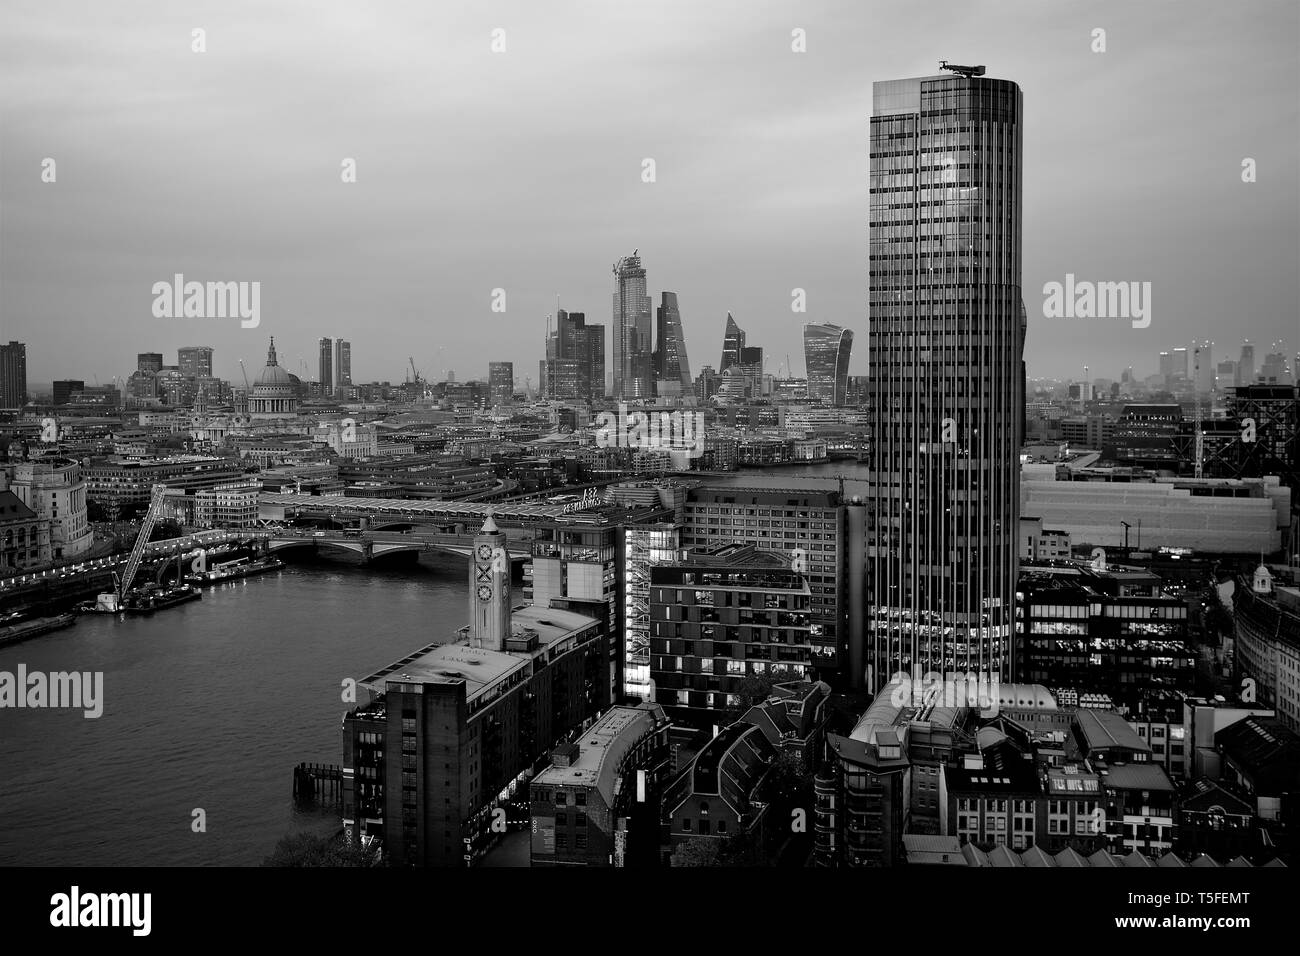 London skyline at dusk showing the river and other landmarks. - Stock Image